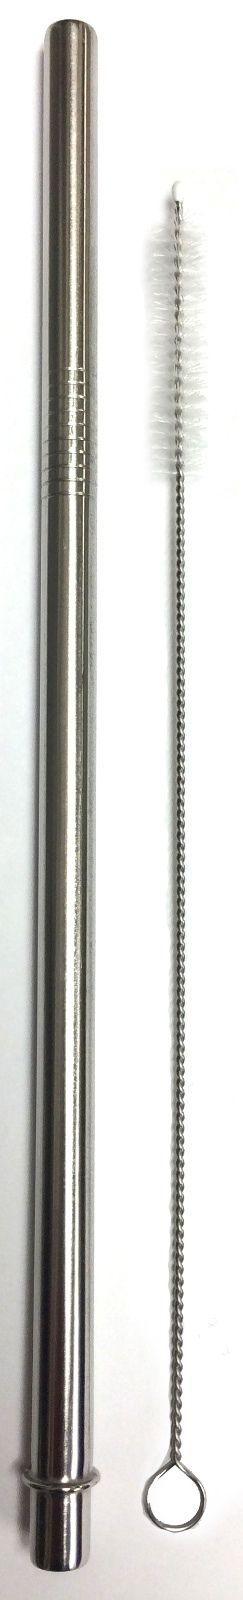 2 Starbucks Replacement Straws Stainless Steel Reusable, Washable Drinking Straw